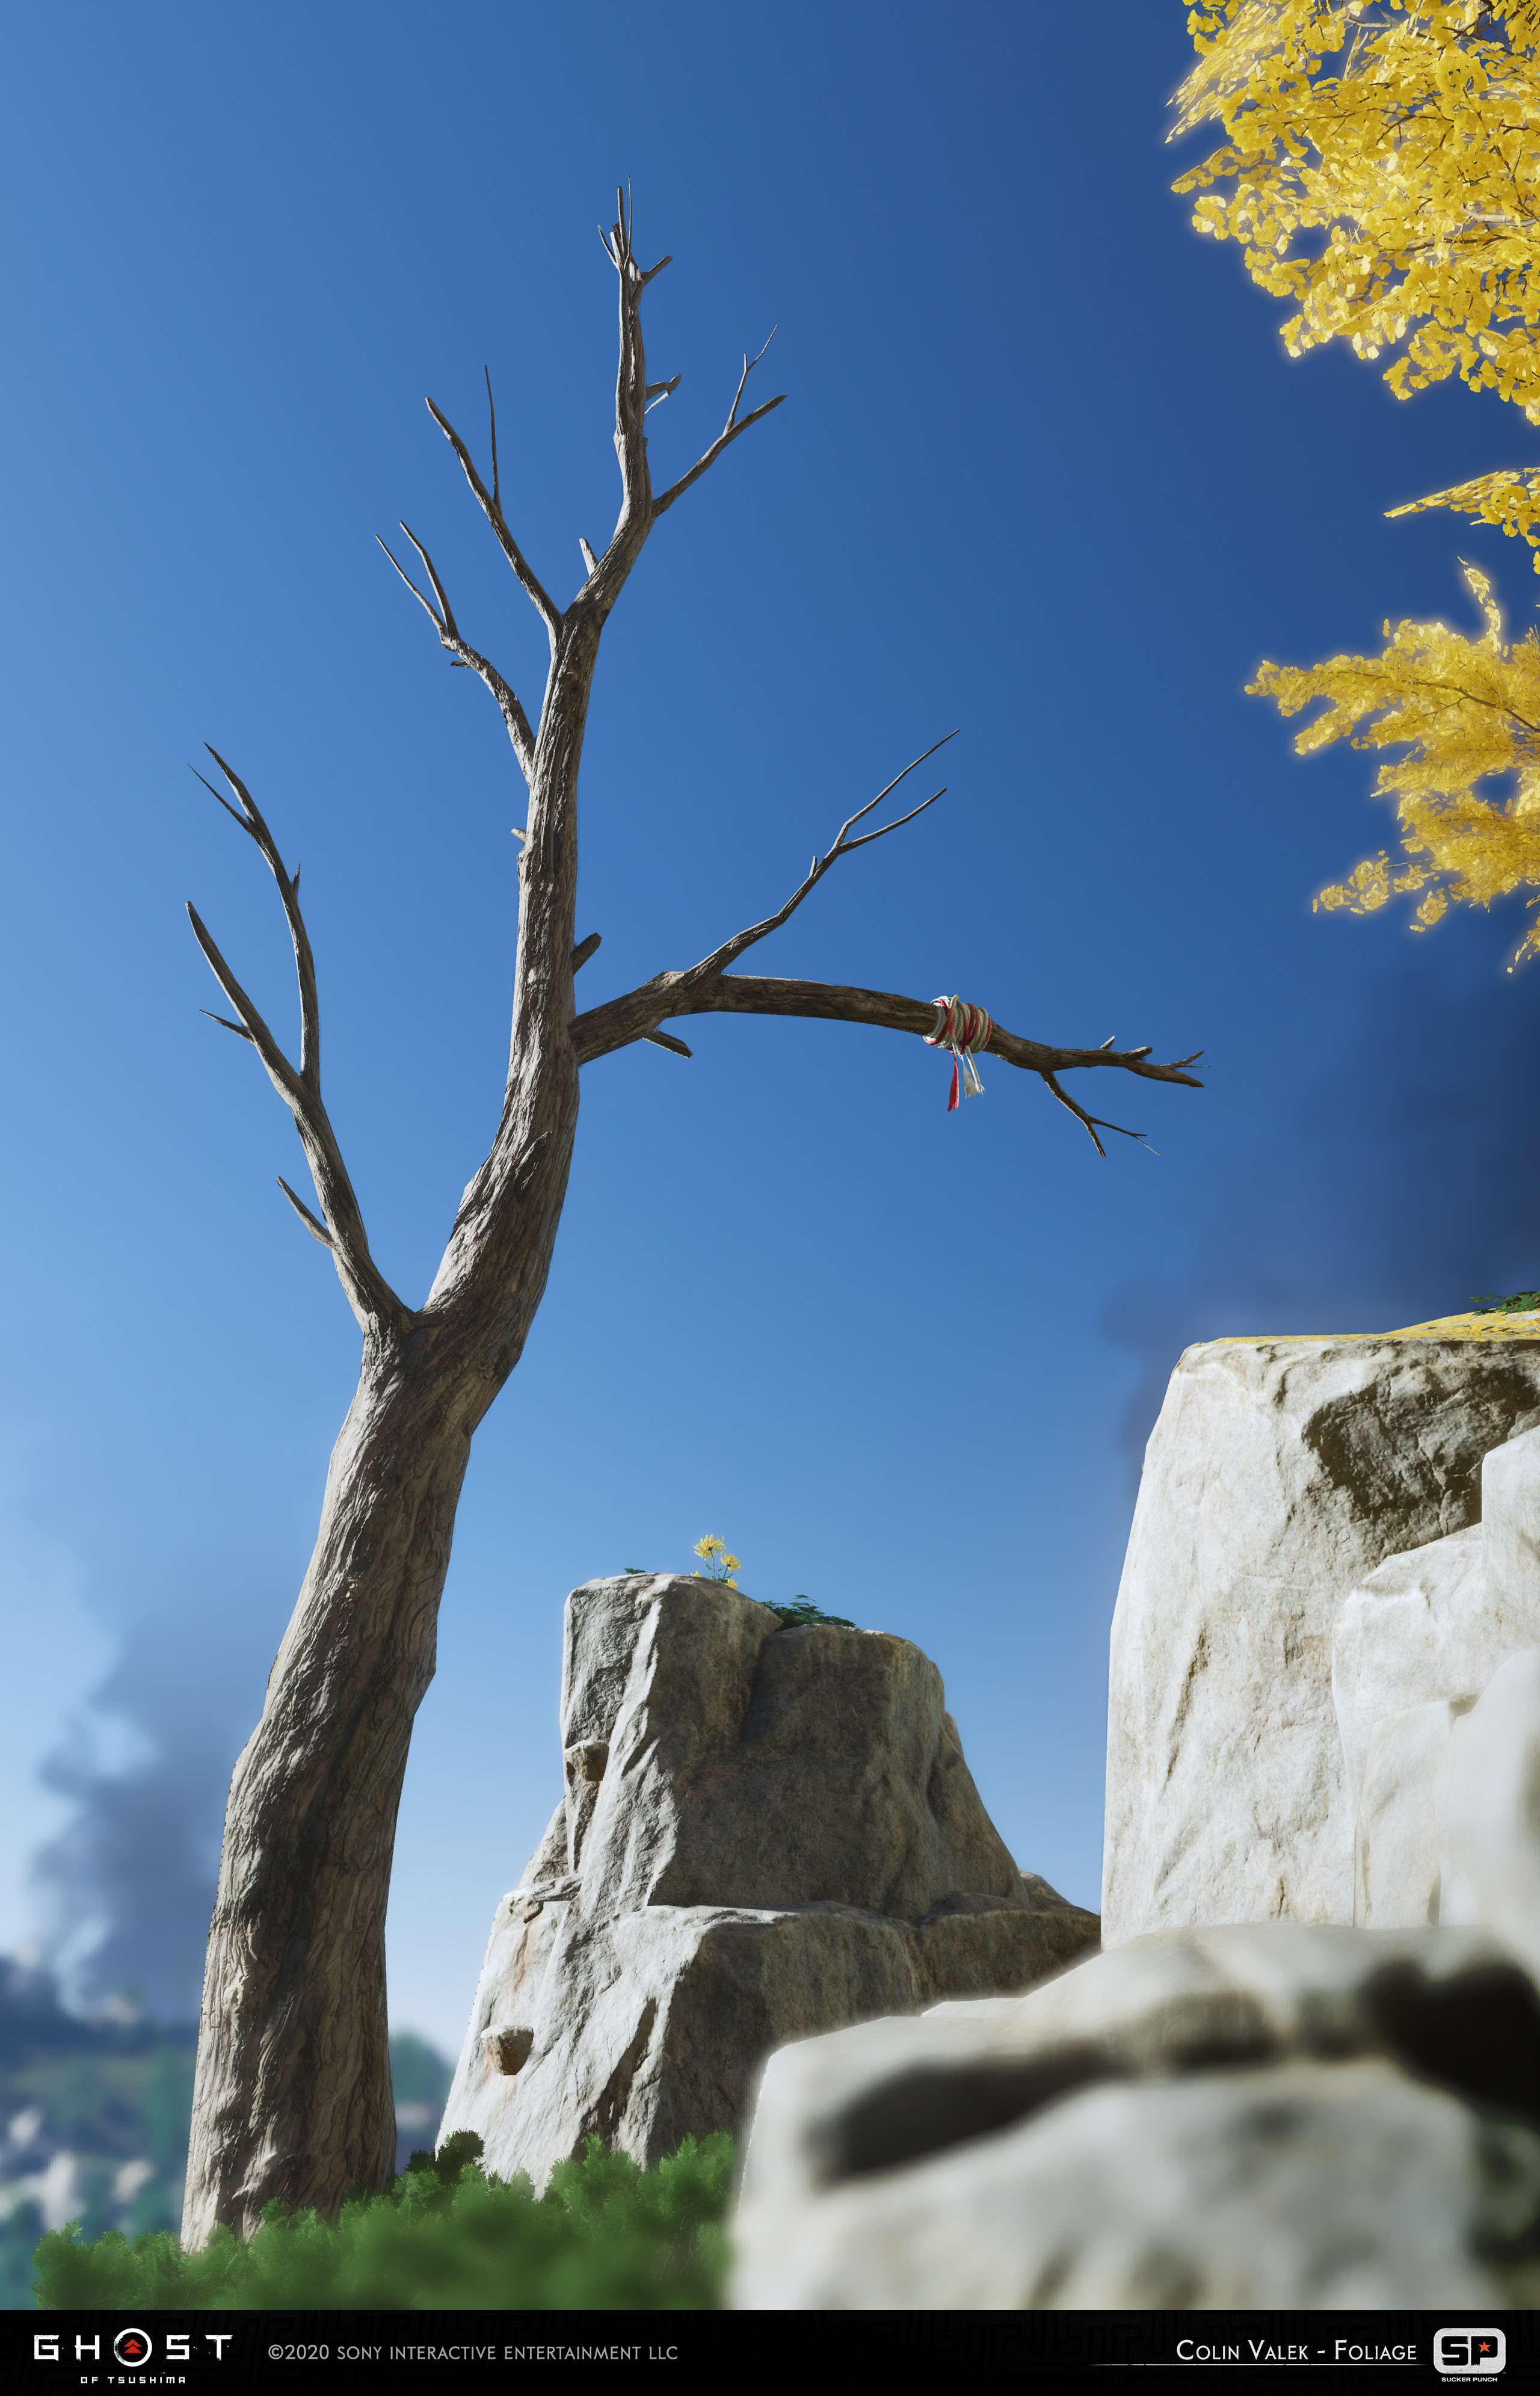 Dead tree used for grappling